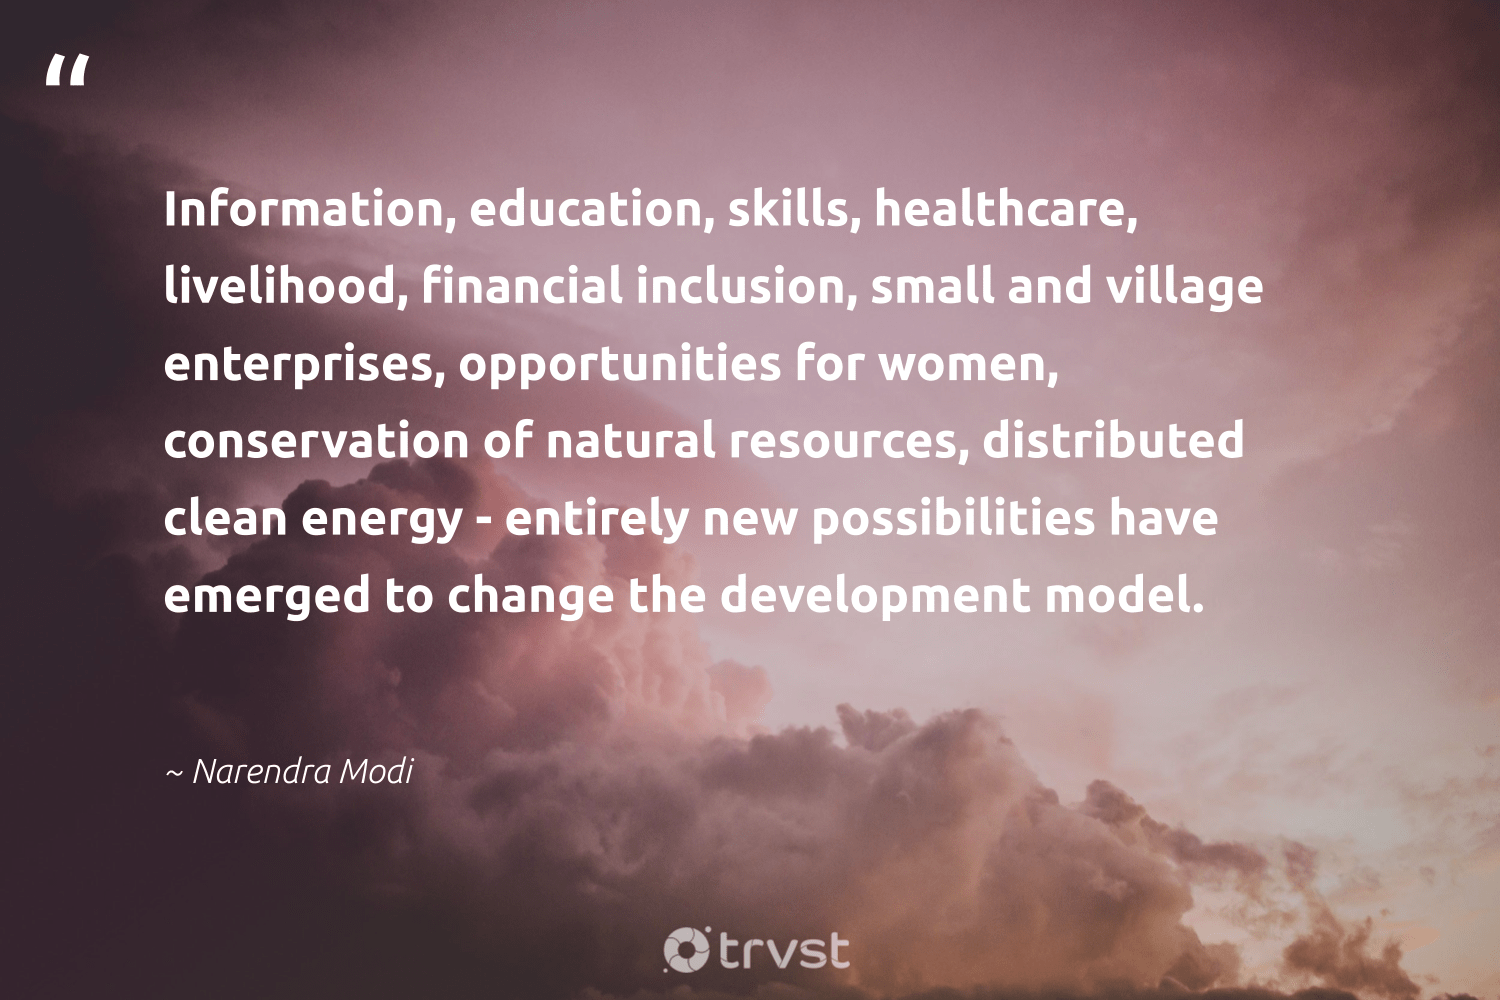 """""""Information, education, skills, healthcare, livelihood, financial inclusion, small and village enterprises, opportunities for women, conservation of natural resources, distributed clean energy - entirely new possibilities have emerged to change the development model.""""  - Narendra Modi #trvst #quotes #women #cleanenergy #energy #conservation #natural #inclusion #education #development #renewables #socialchange"""